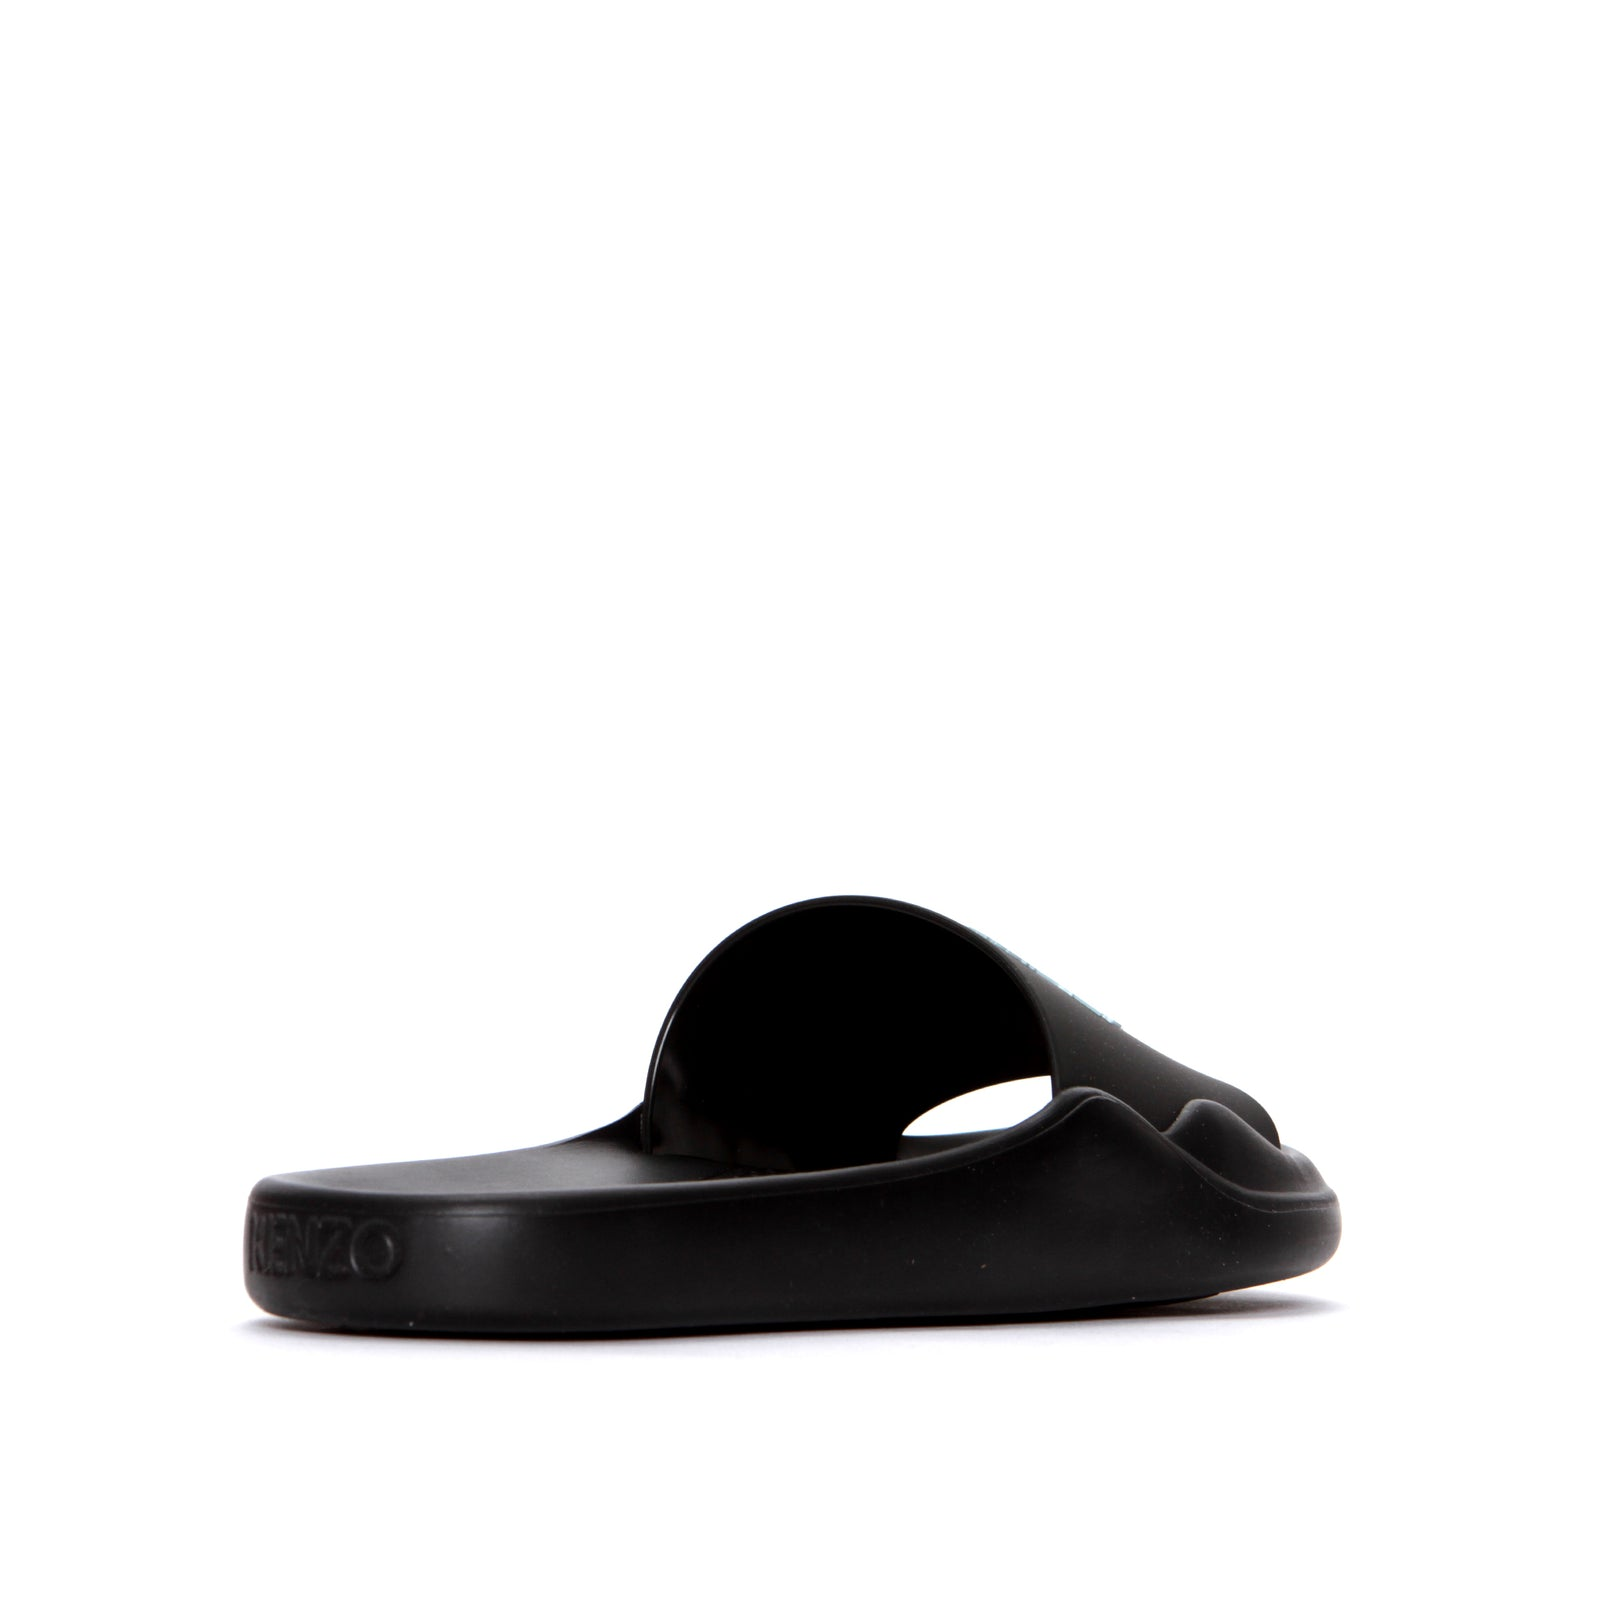 Kenzo Paris FW20 Pool Mule Tiger Head Men's Slides Black